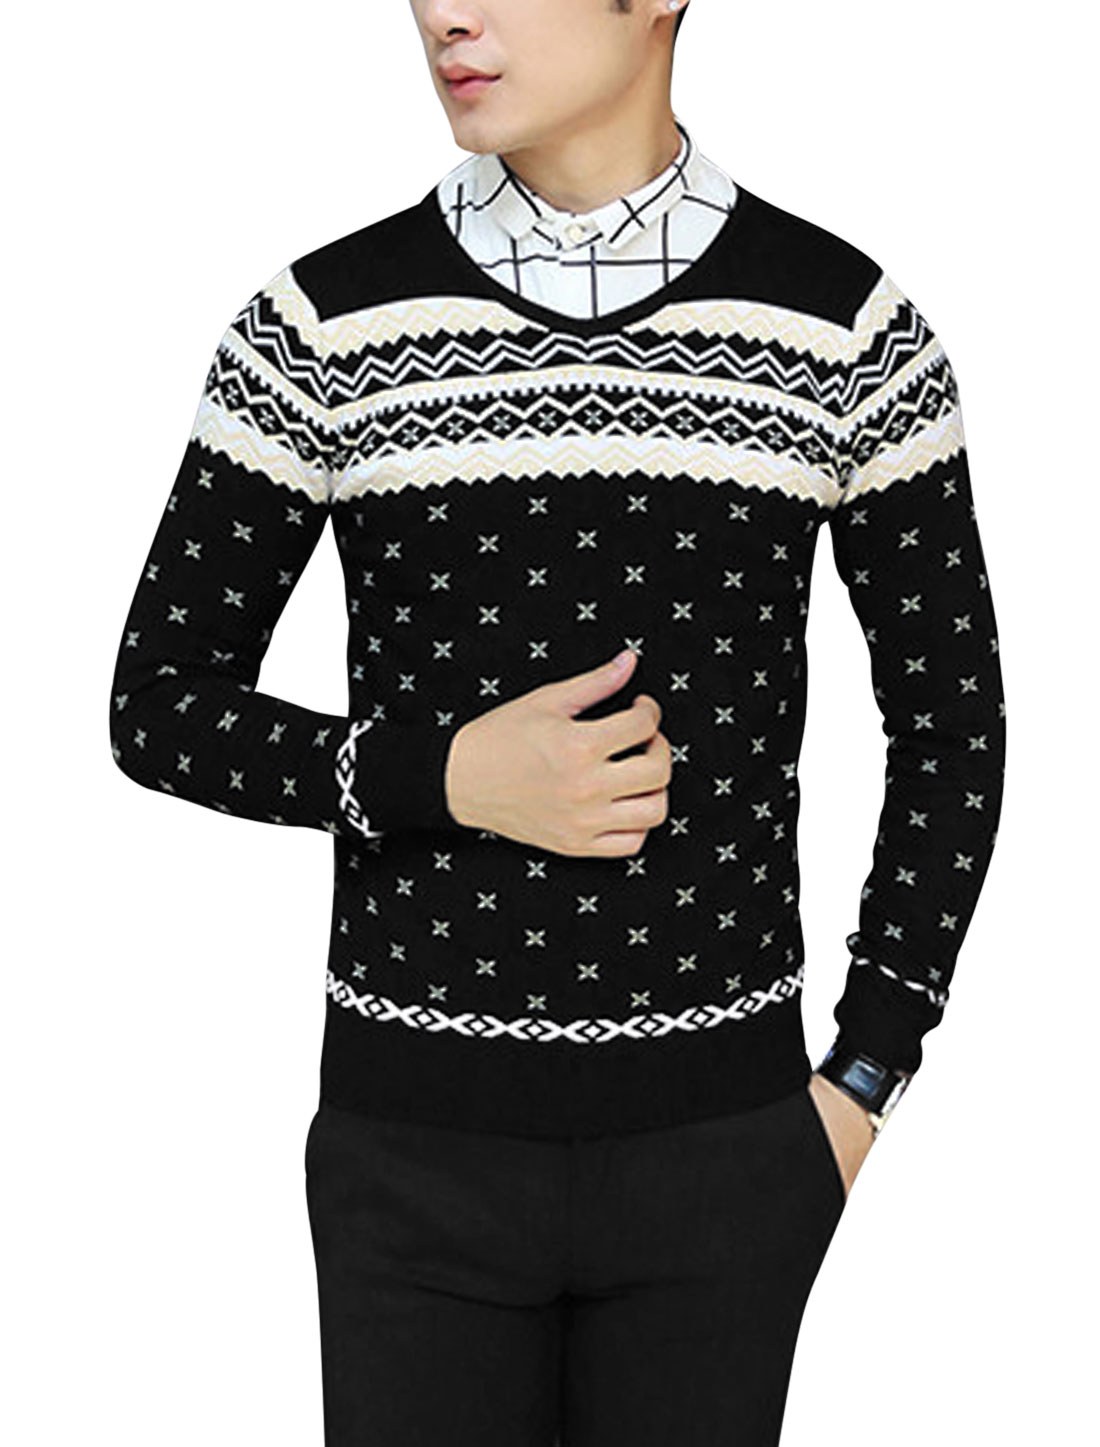 Men V Neck Long Sleeve Zig-Zag Novelty Pattern Slim Fit Knit Shirt Black S